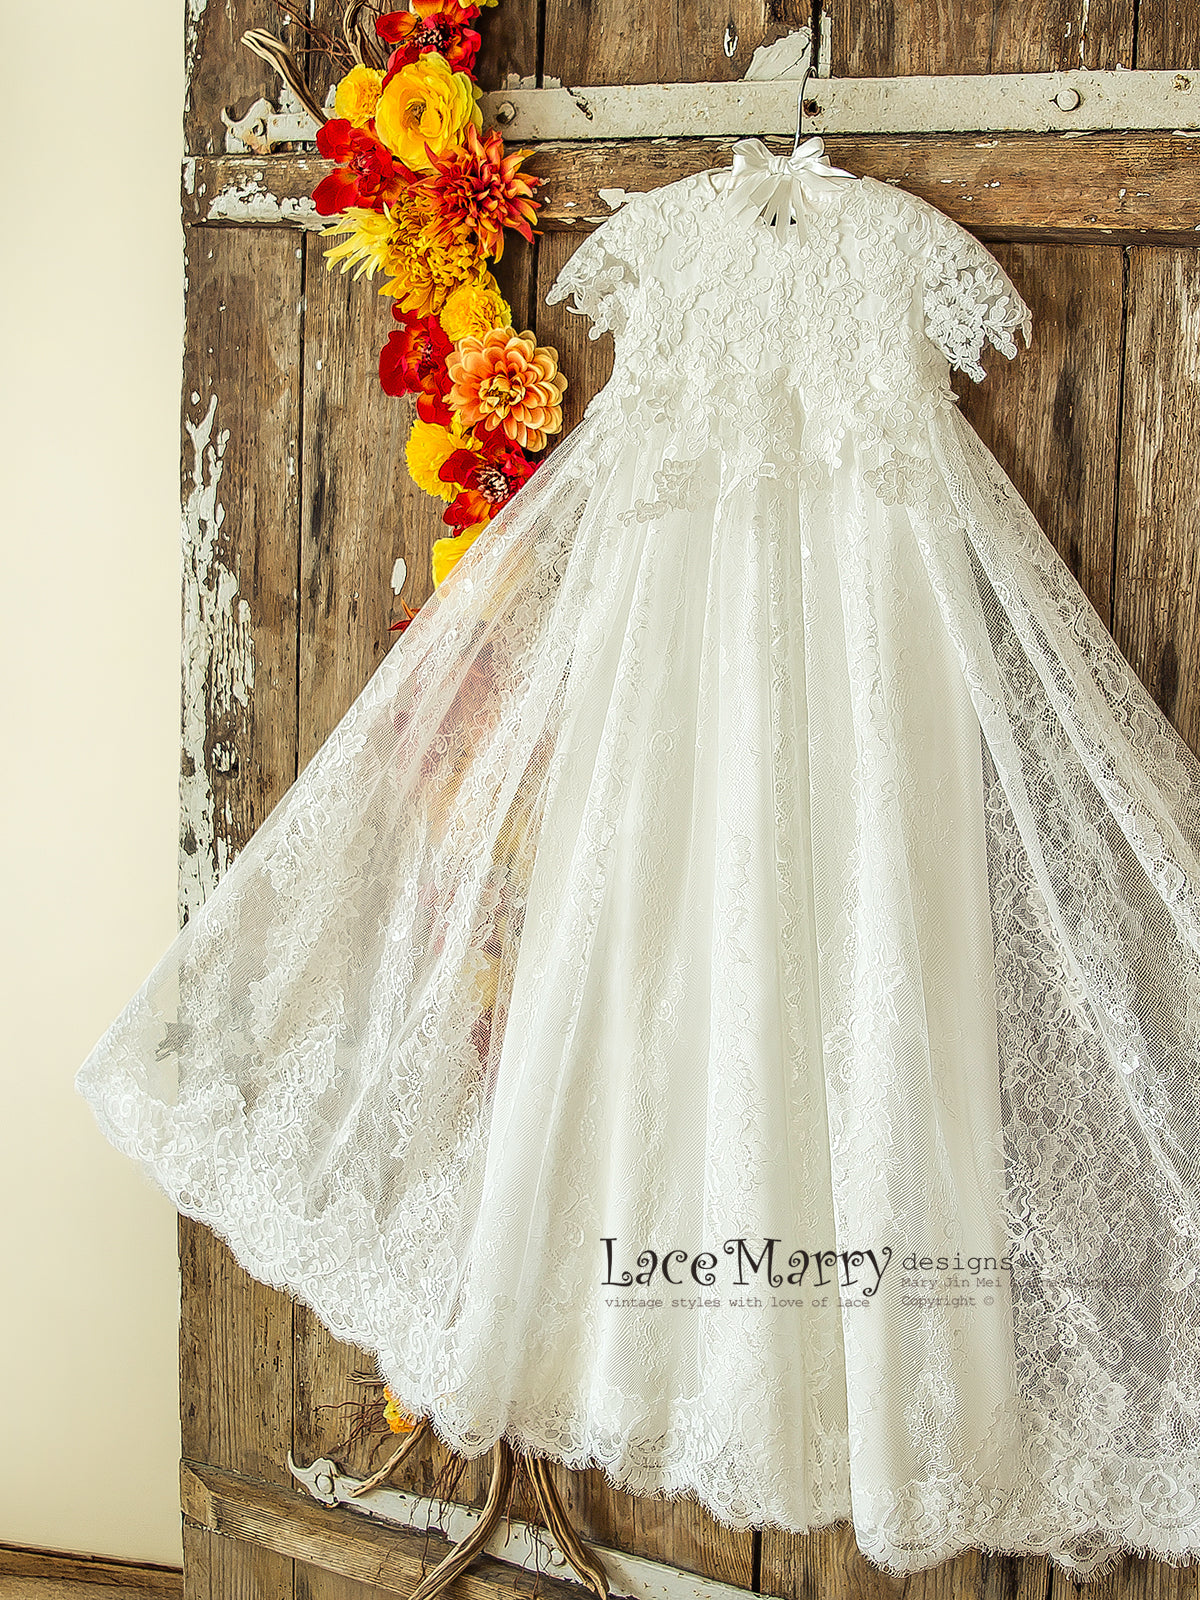 Unique Lace Flower Girl Dress with Small Sleeves and Flowy Lace Skirt Design, Ivory Lace Christening Dress, Baptism Dress